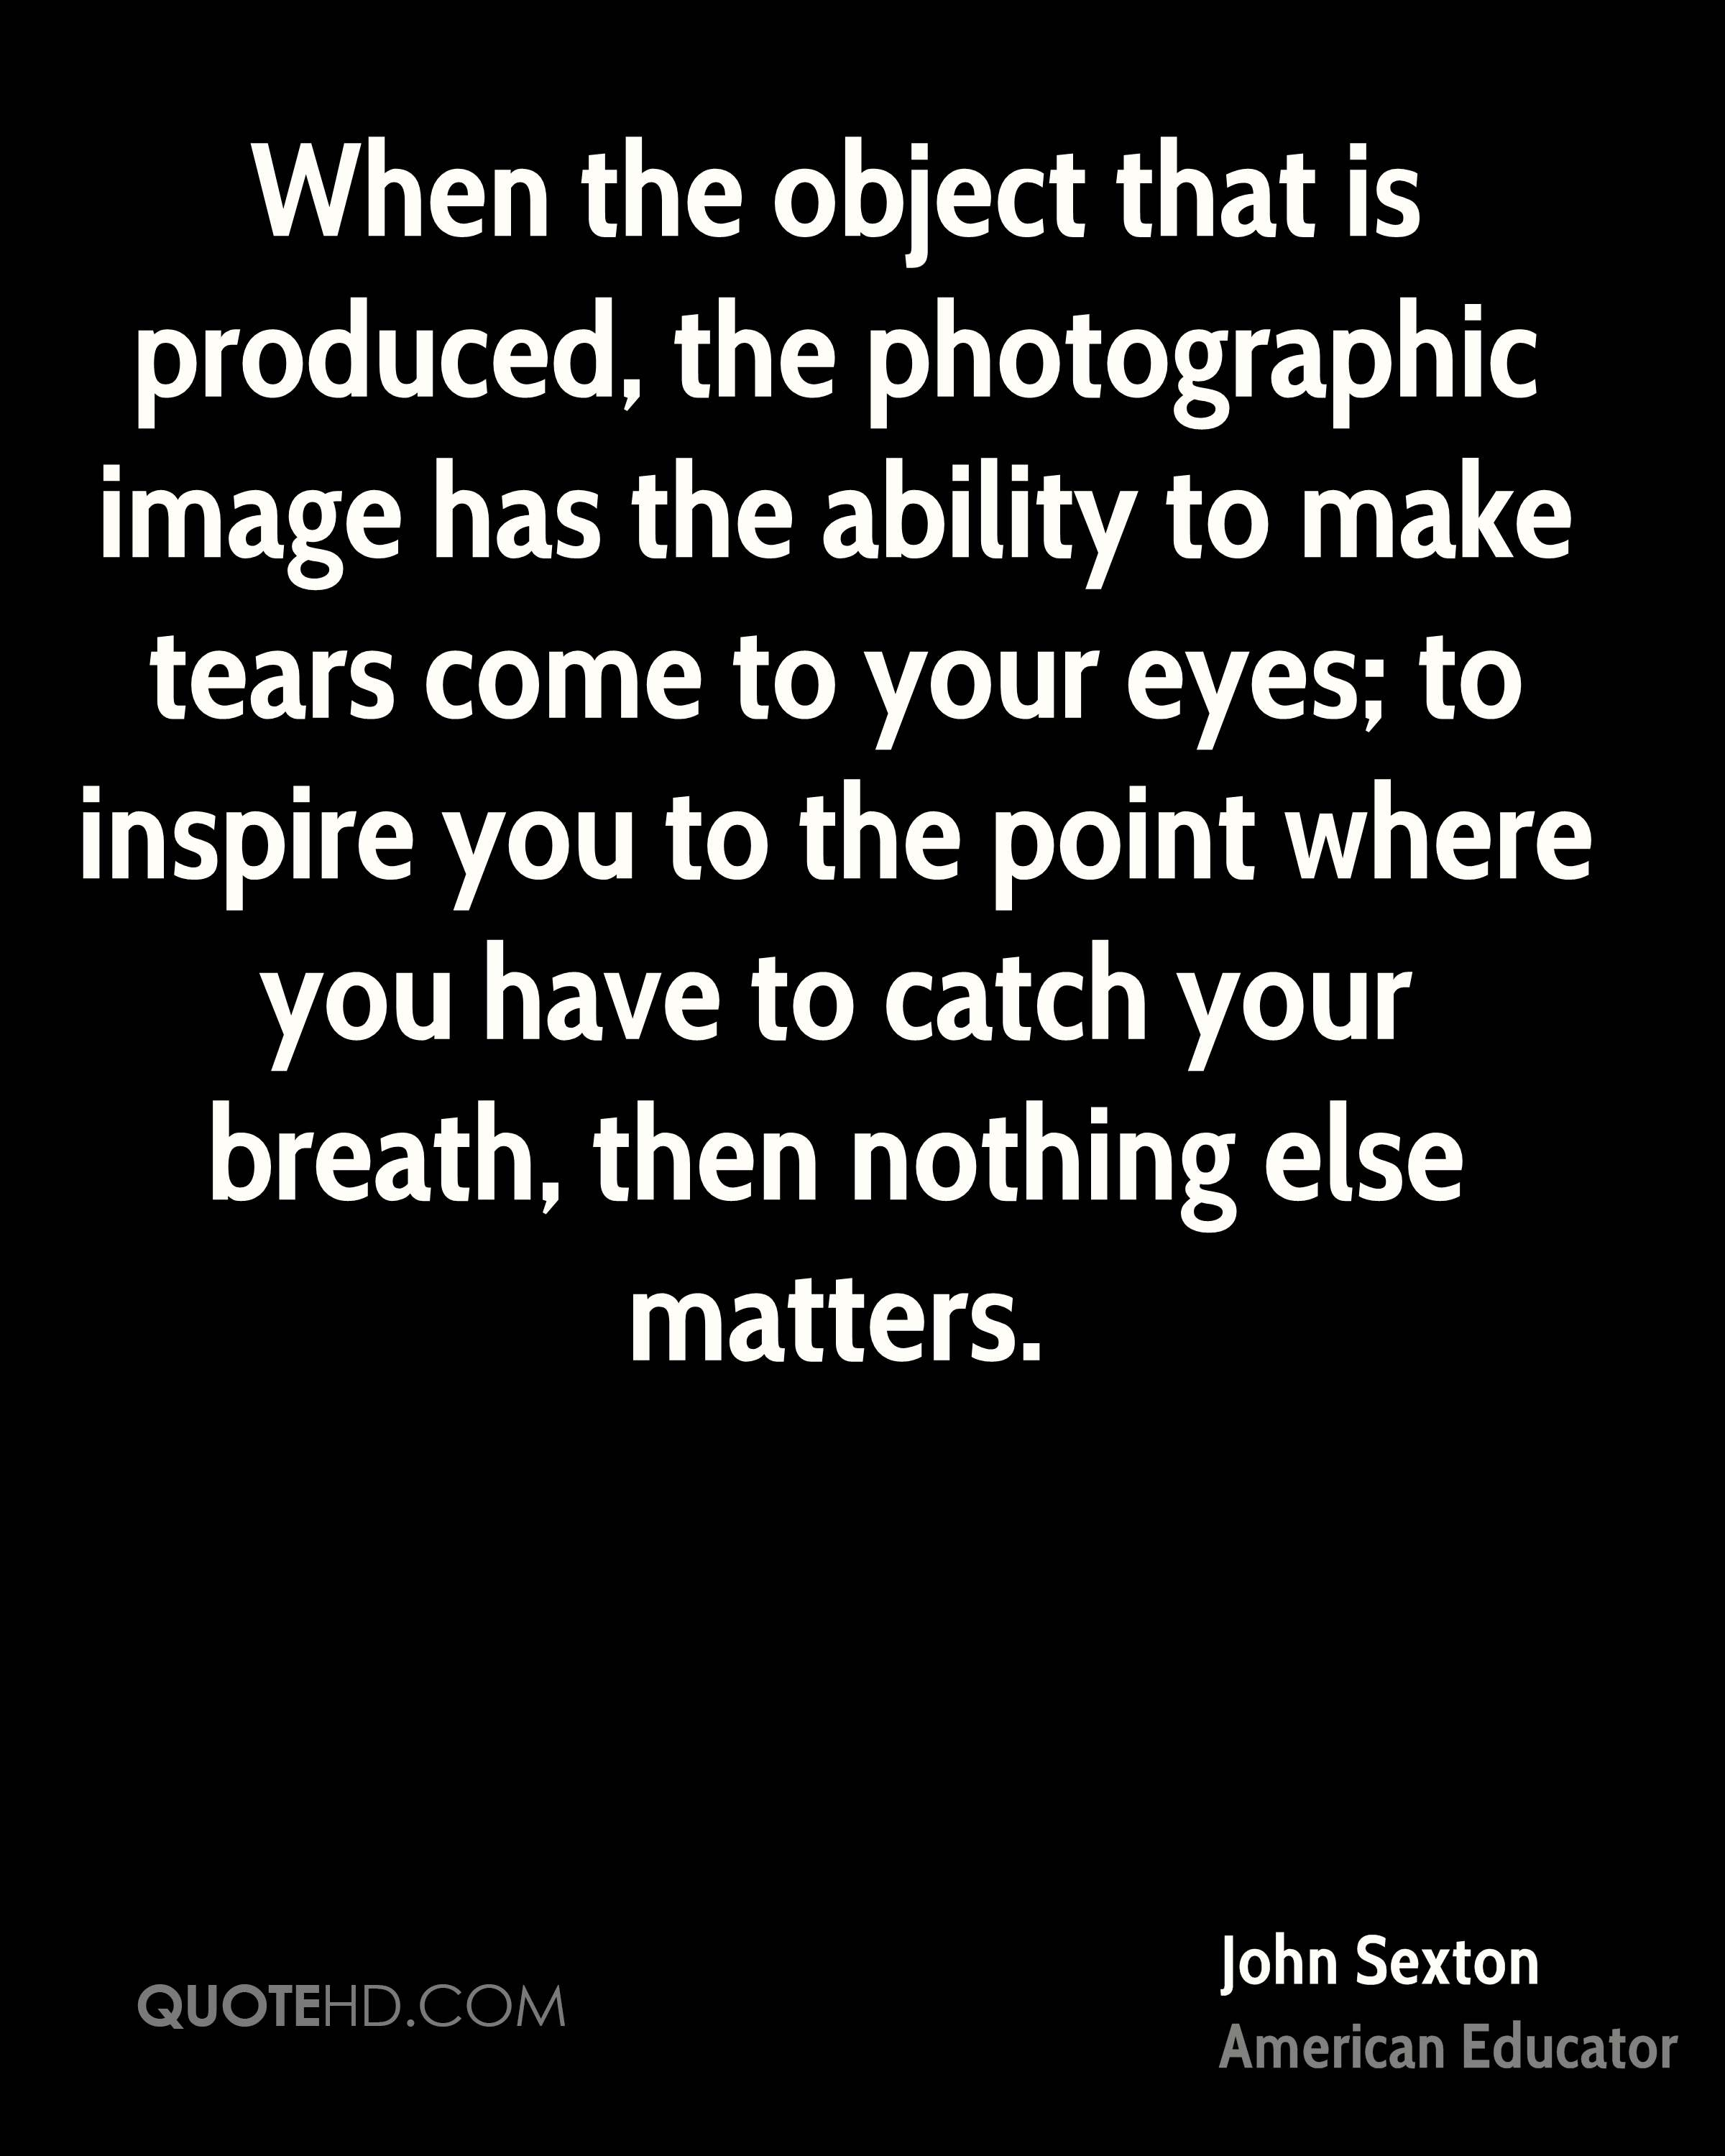 When the object that is produced, the photographic image has the ability to make tears come to your eyes; to inspire you to the point where you have to catch your breath, then nothing else matters.